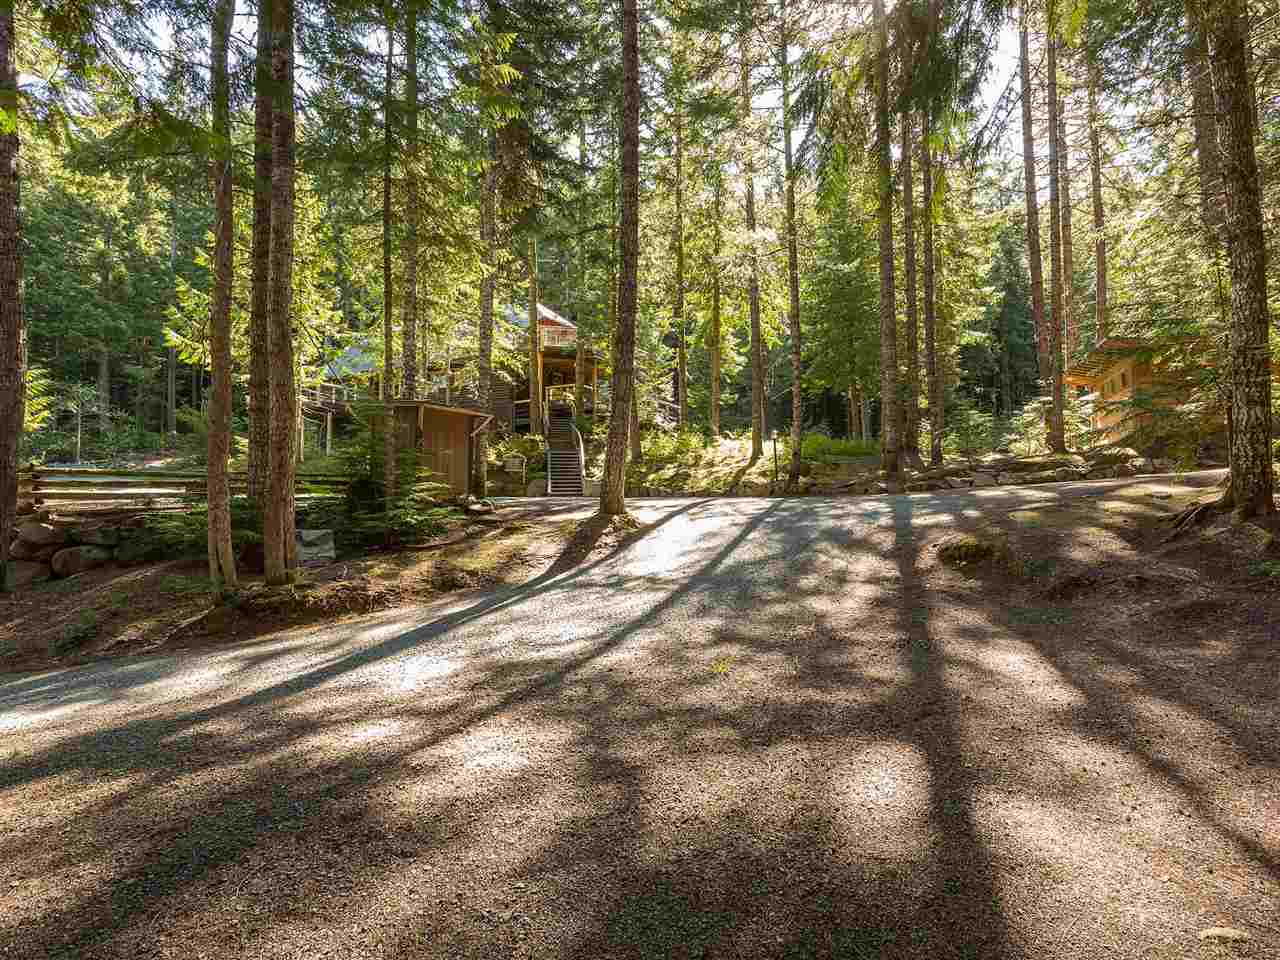 Paradise found! A rare opportunity to purchase a 1.54 acre parcel of land surrounded by dedicated parkland and yet conveniently located between Creekside and Whistler Village. Easy access to the valley trail and Alta Lake with views of Whistler peak, Rainbow Mountain and Alta Lake! The best that Whistler offers is only moments away; then return to this special oasis to experience the peace and calm that only nature provides! The zoning permits nightly and weekly rentals. A truly unique offering!